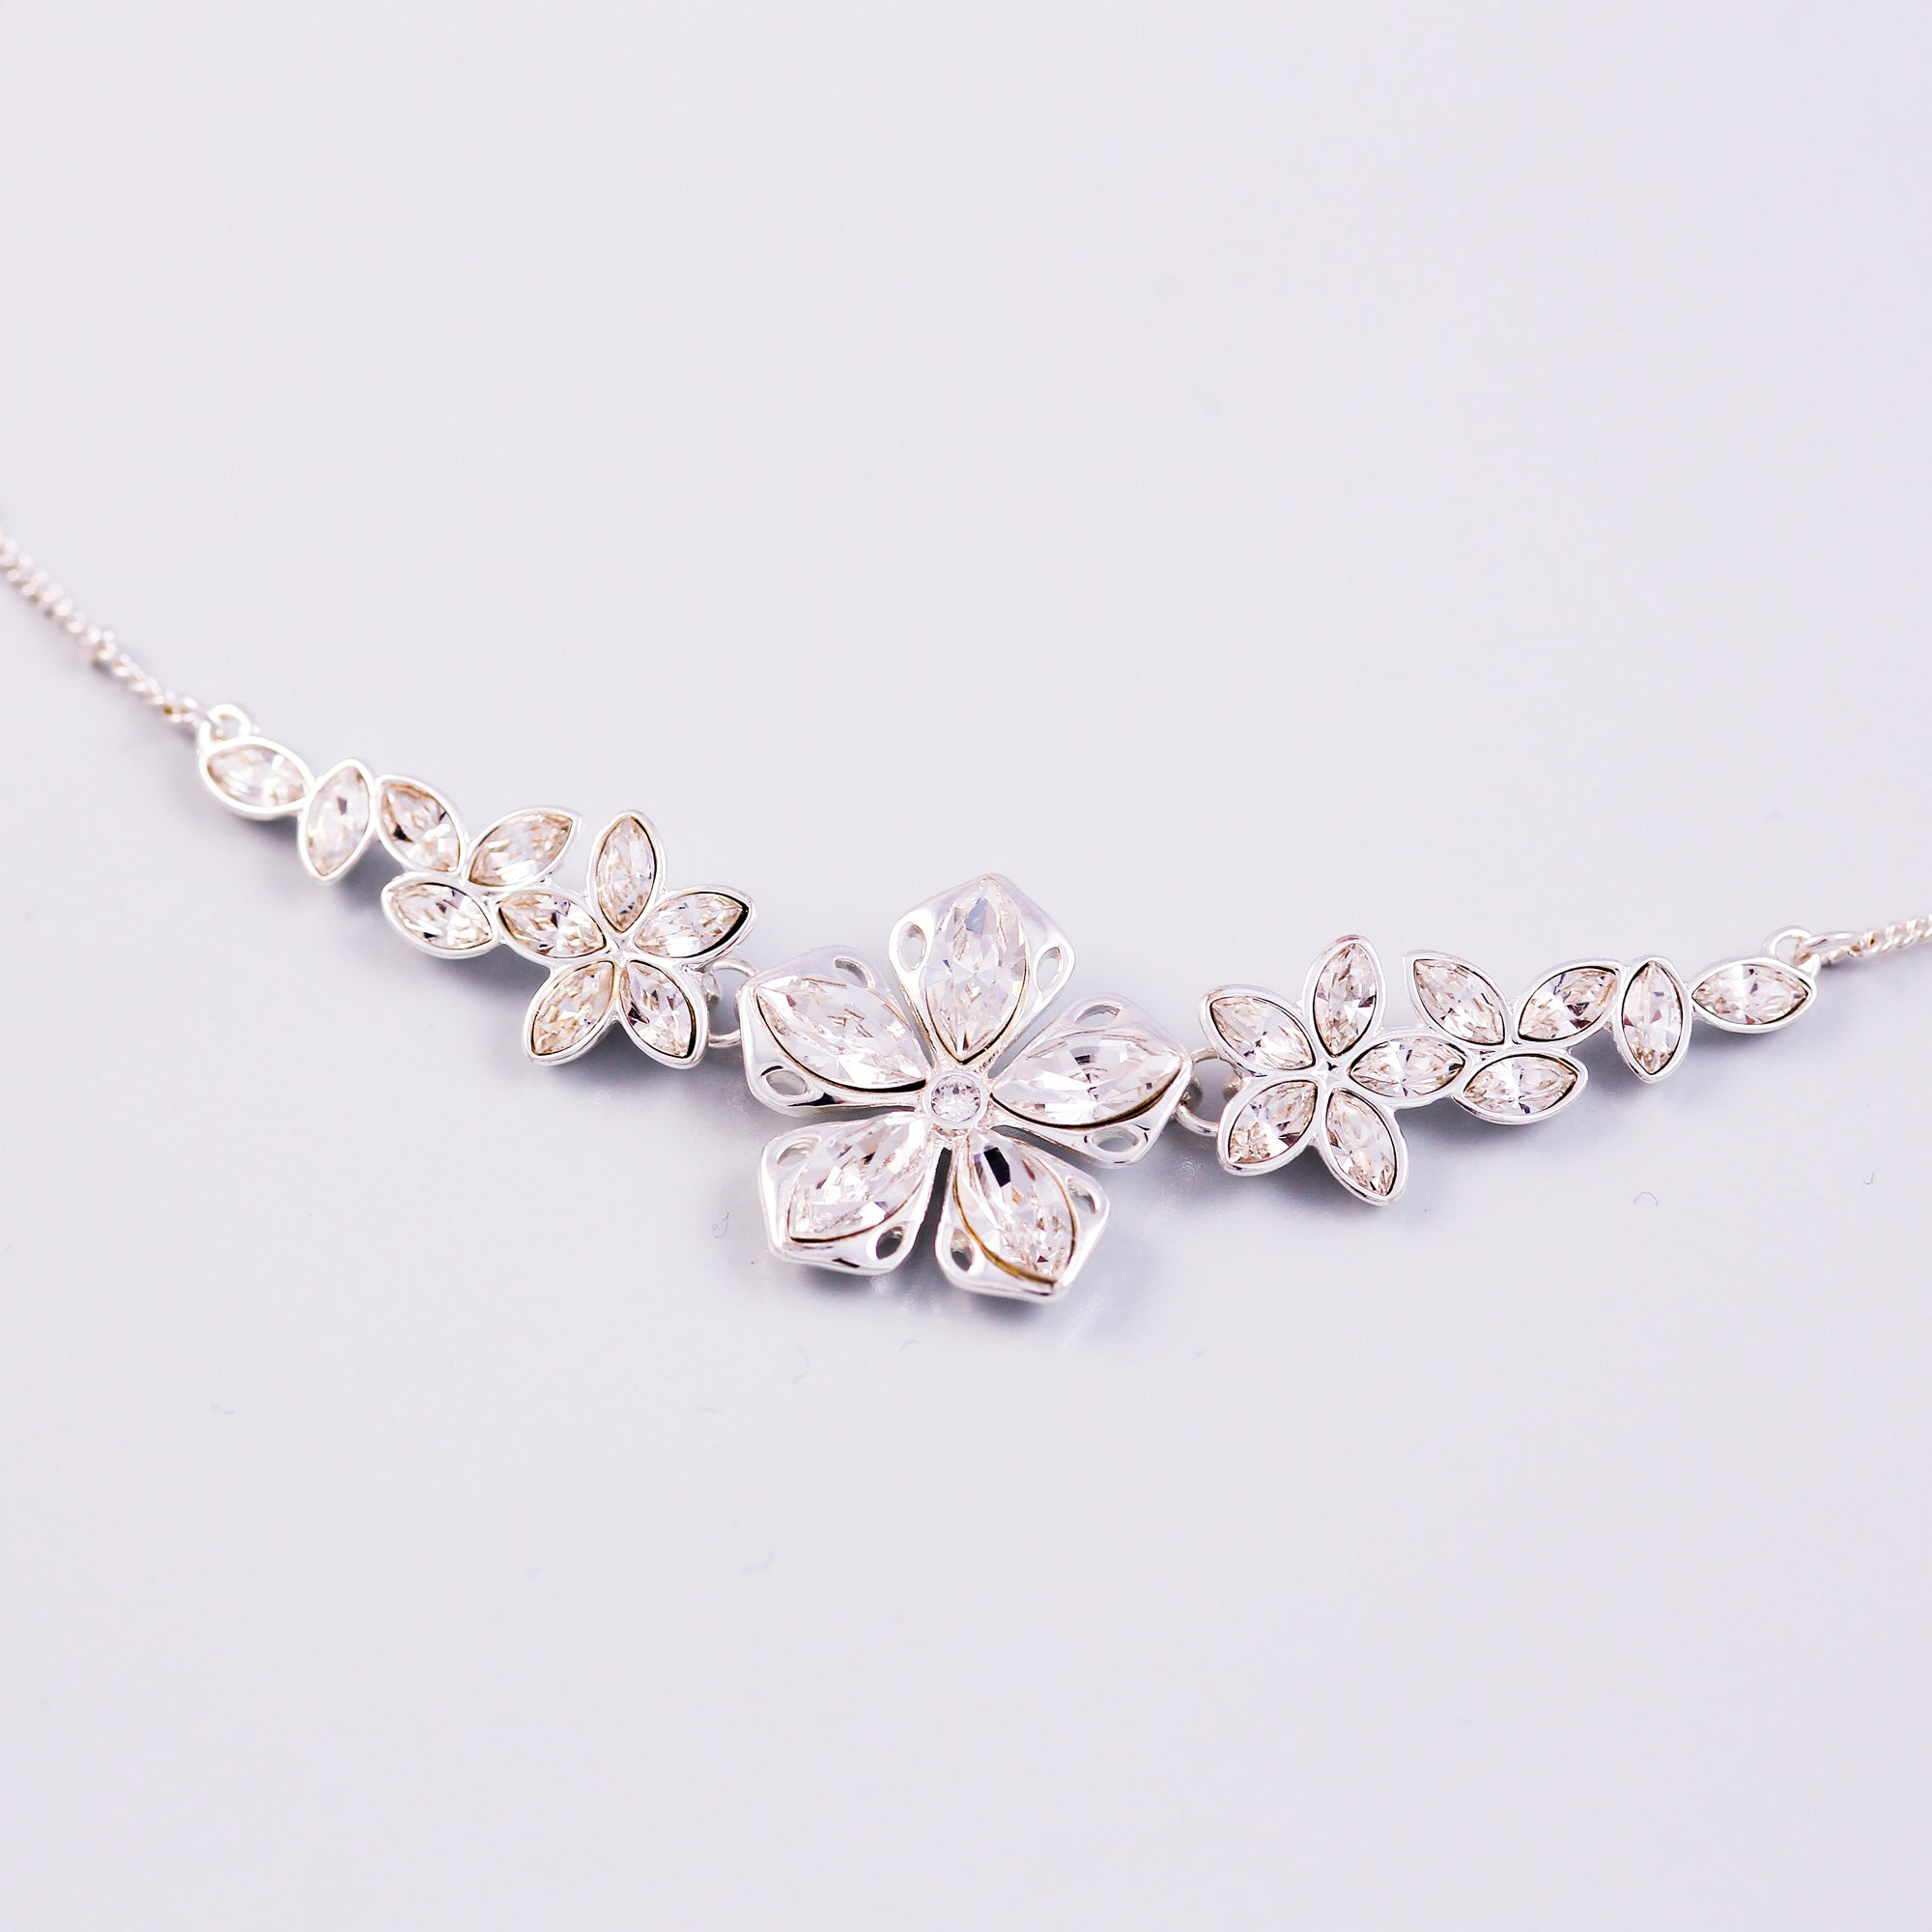 Silver & Crystal Cherry Blossom Sakura Collar Necklace